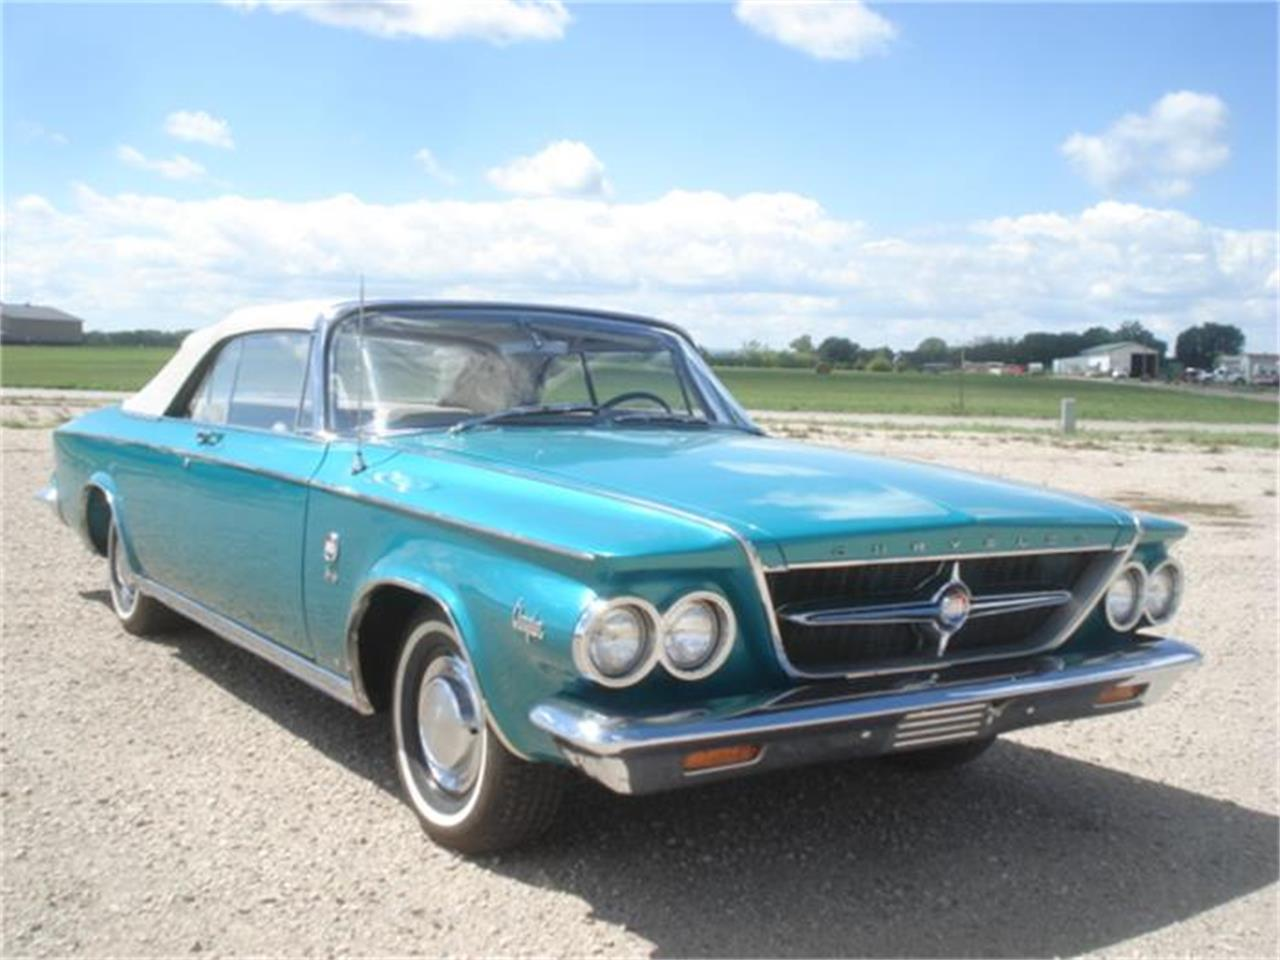 Large Picture of Classic '63 Chrysler 300 located in Milbank South Dakota - $21,985.00 - F34A